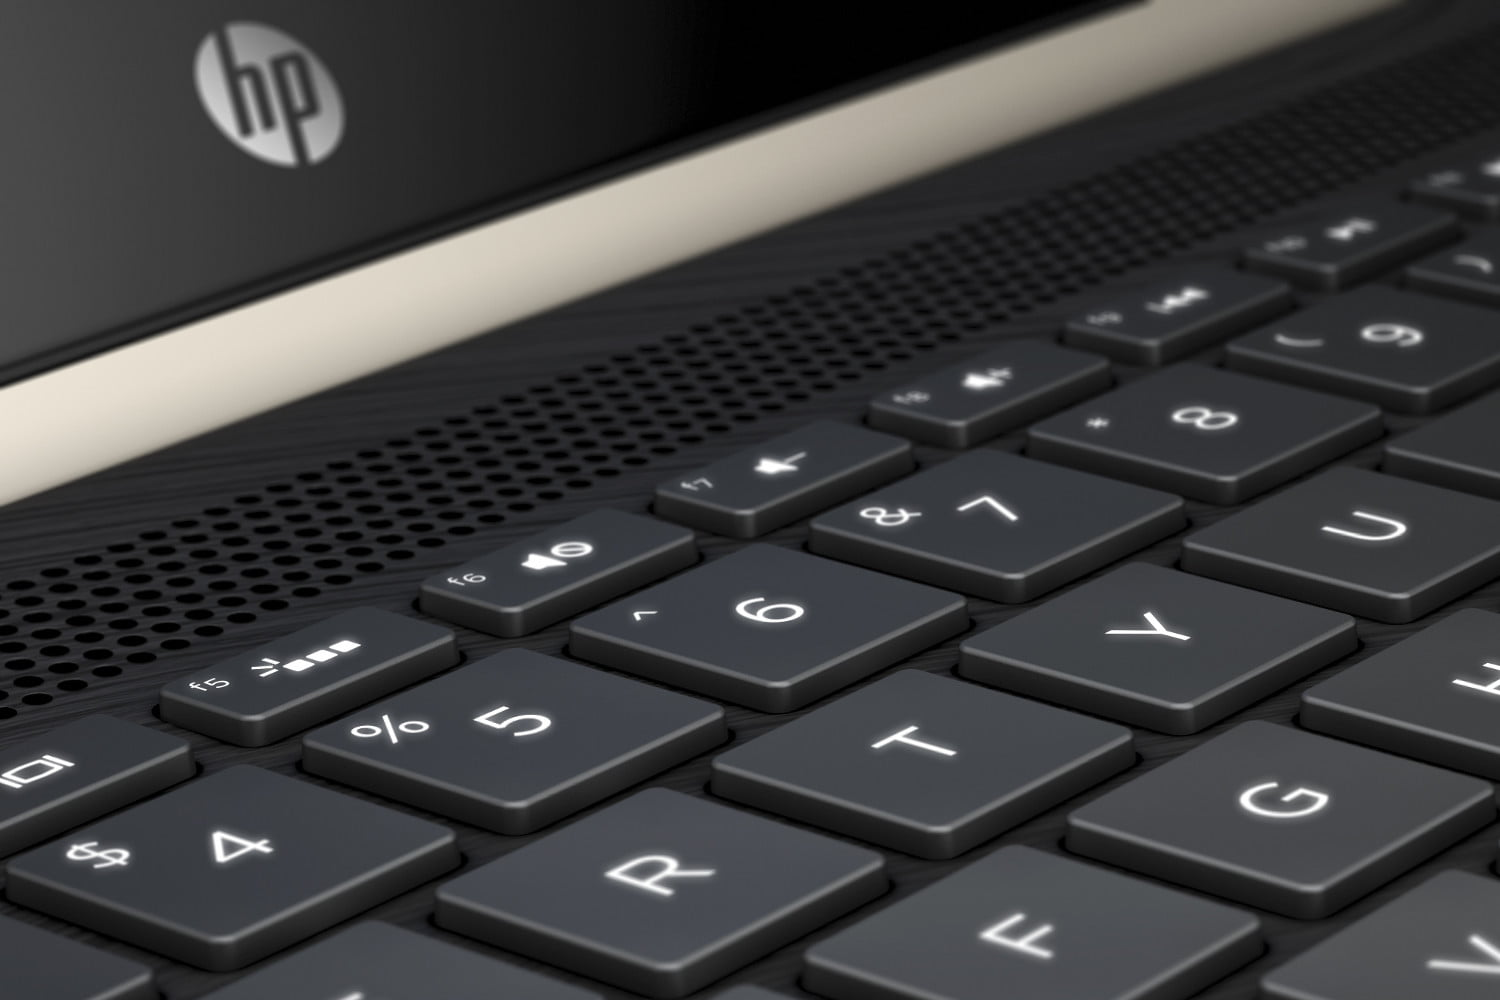 HP Responds To Complaints About Silently Installing Software